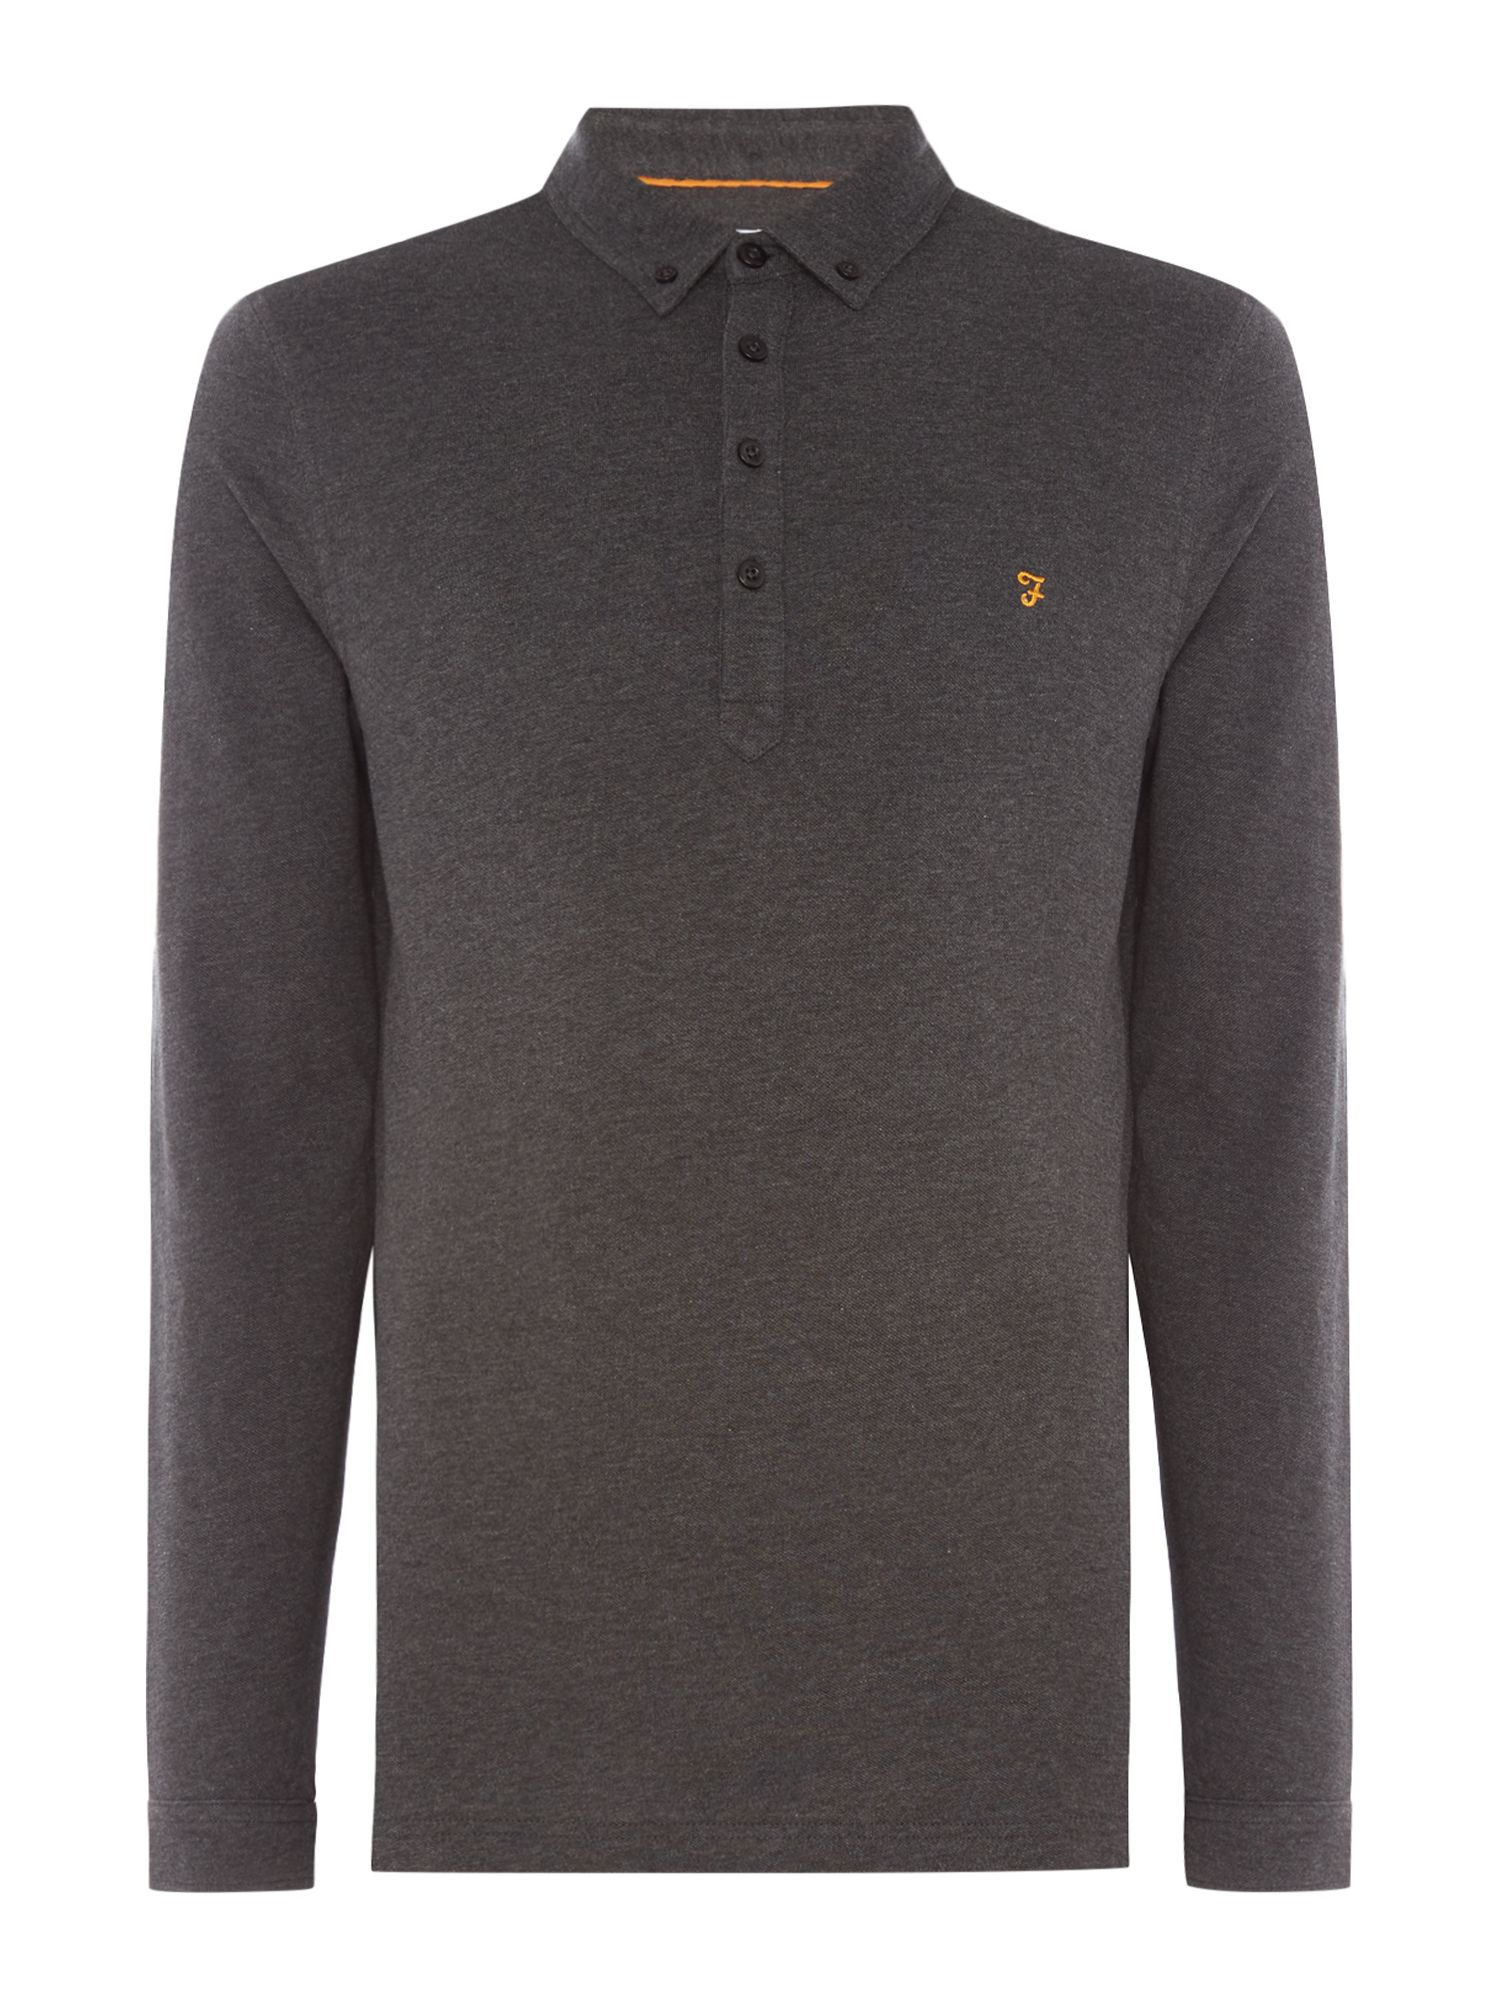 Men's Farah Long Sleeve Merriweather Polo, Charcoal